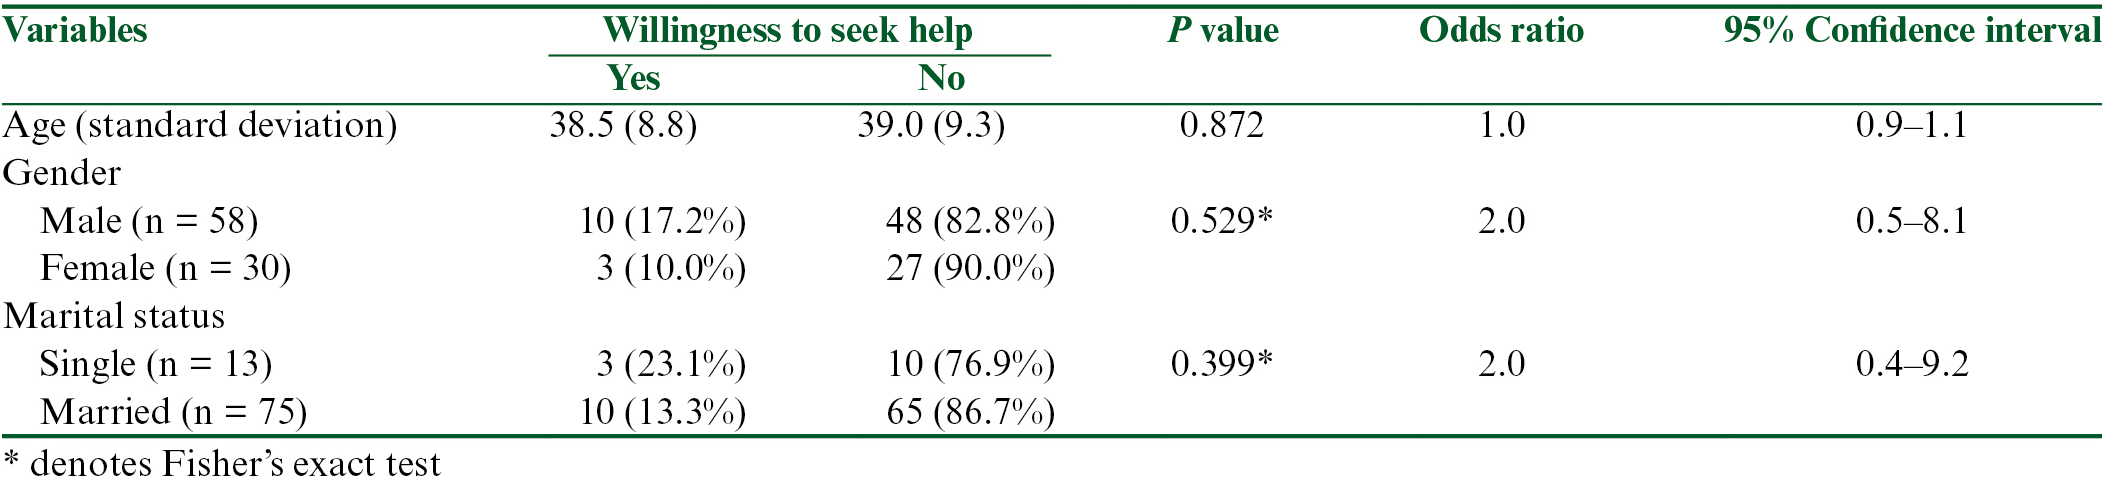 Table 7: The relationship between sociodemographic factors and willingness to seek help